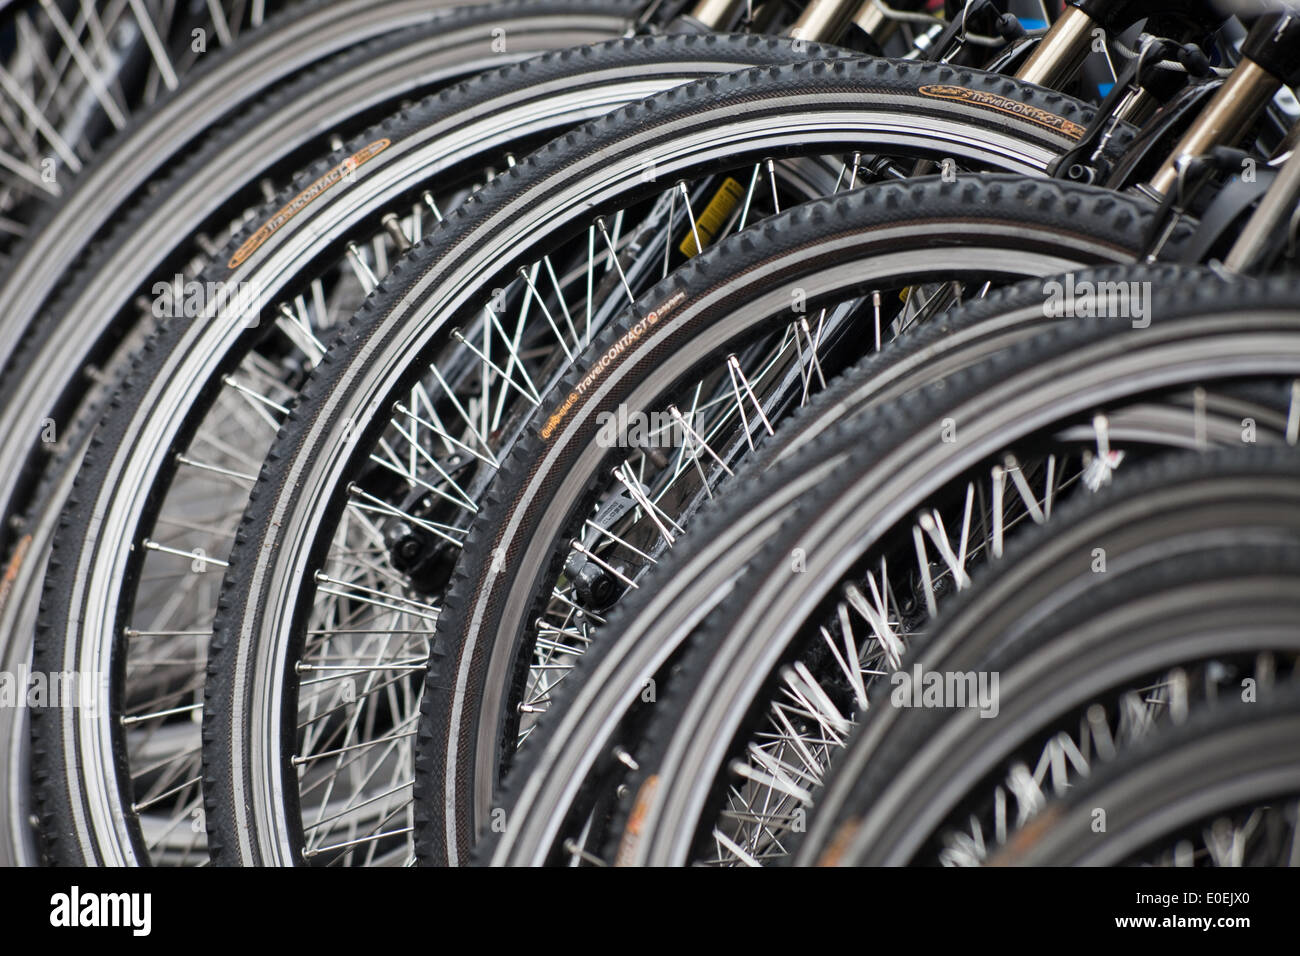 Fahrräder - Bicycles - Stock Image